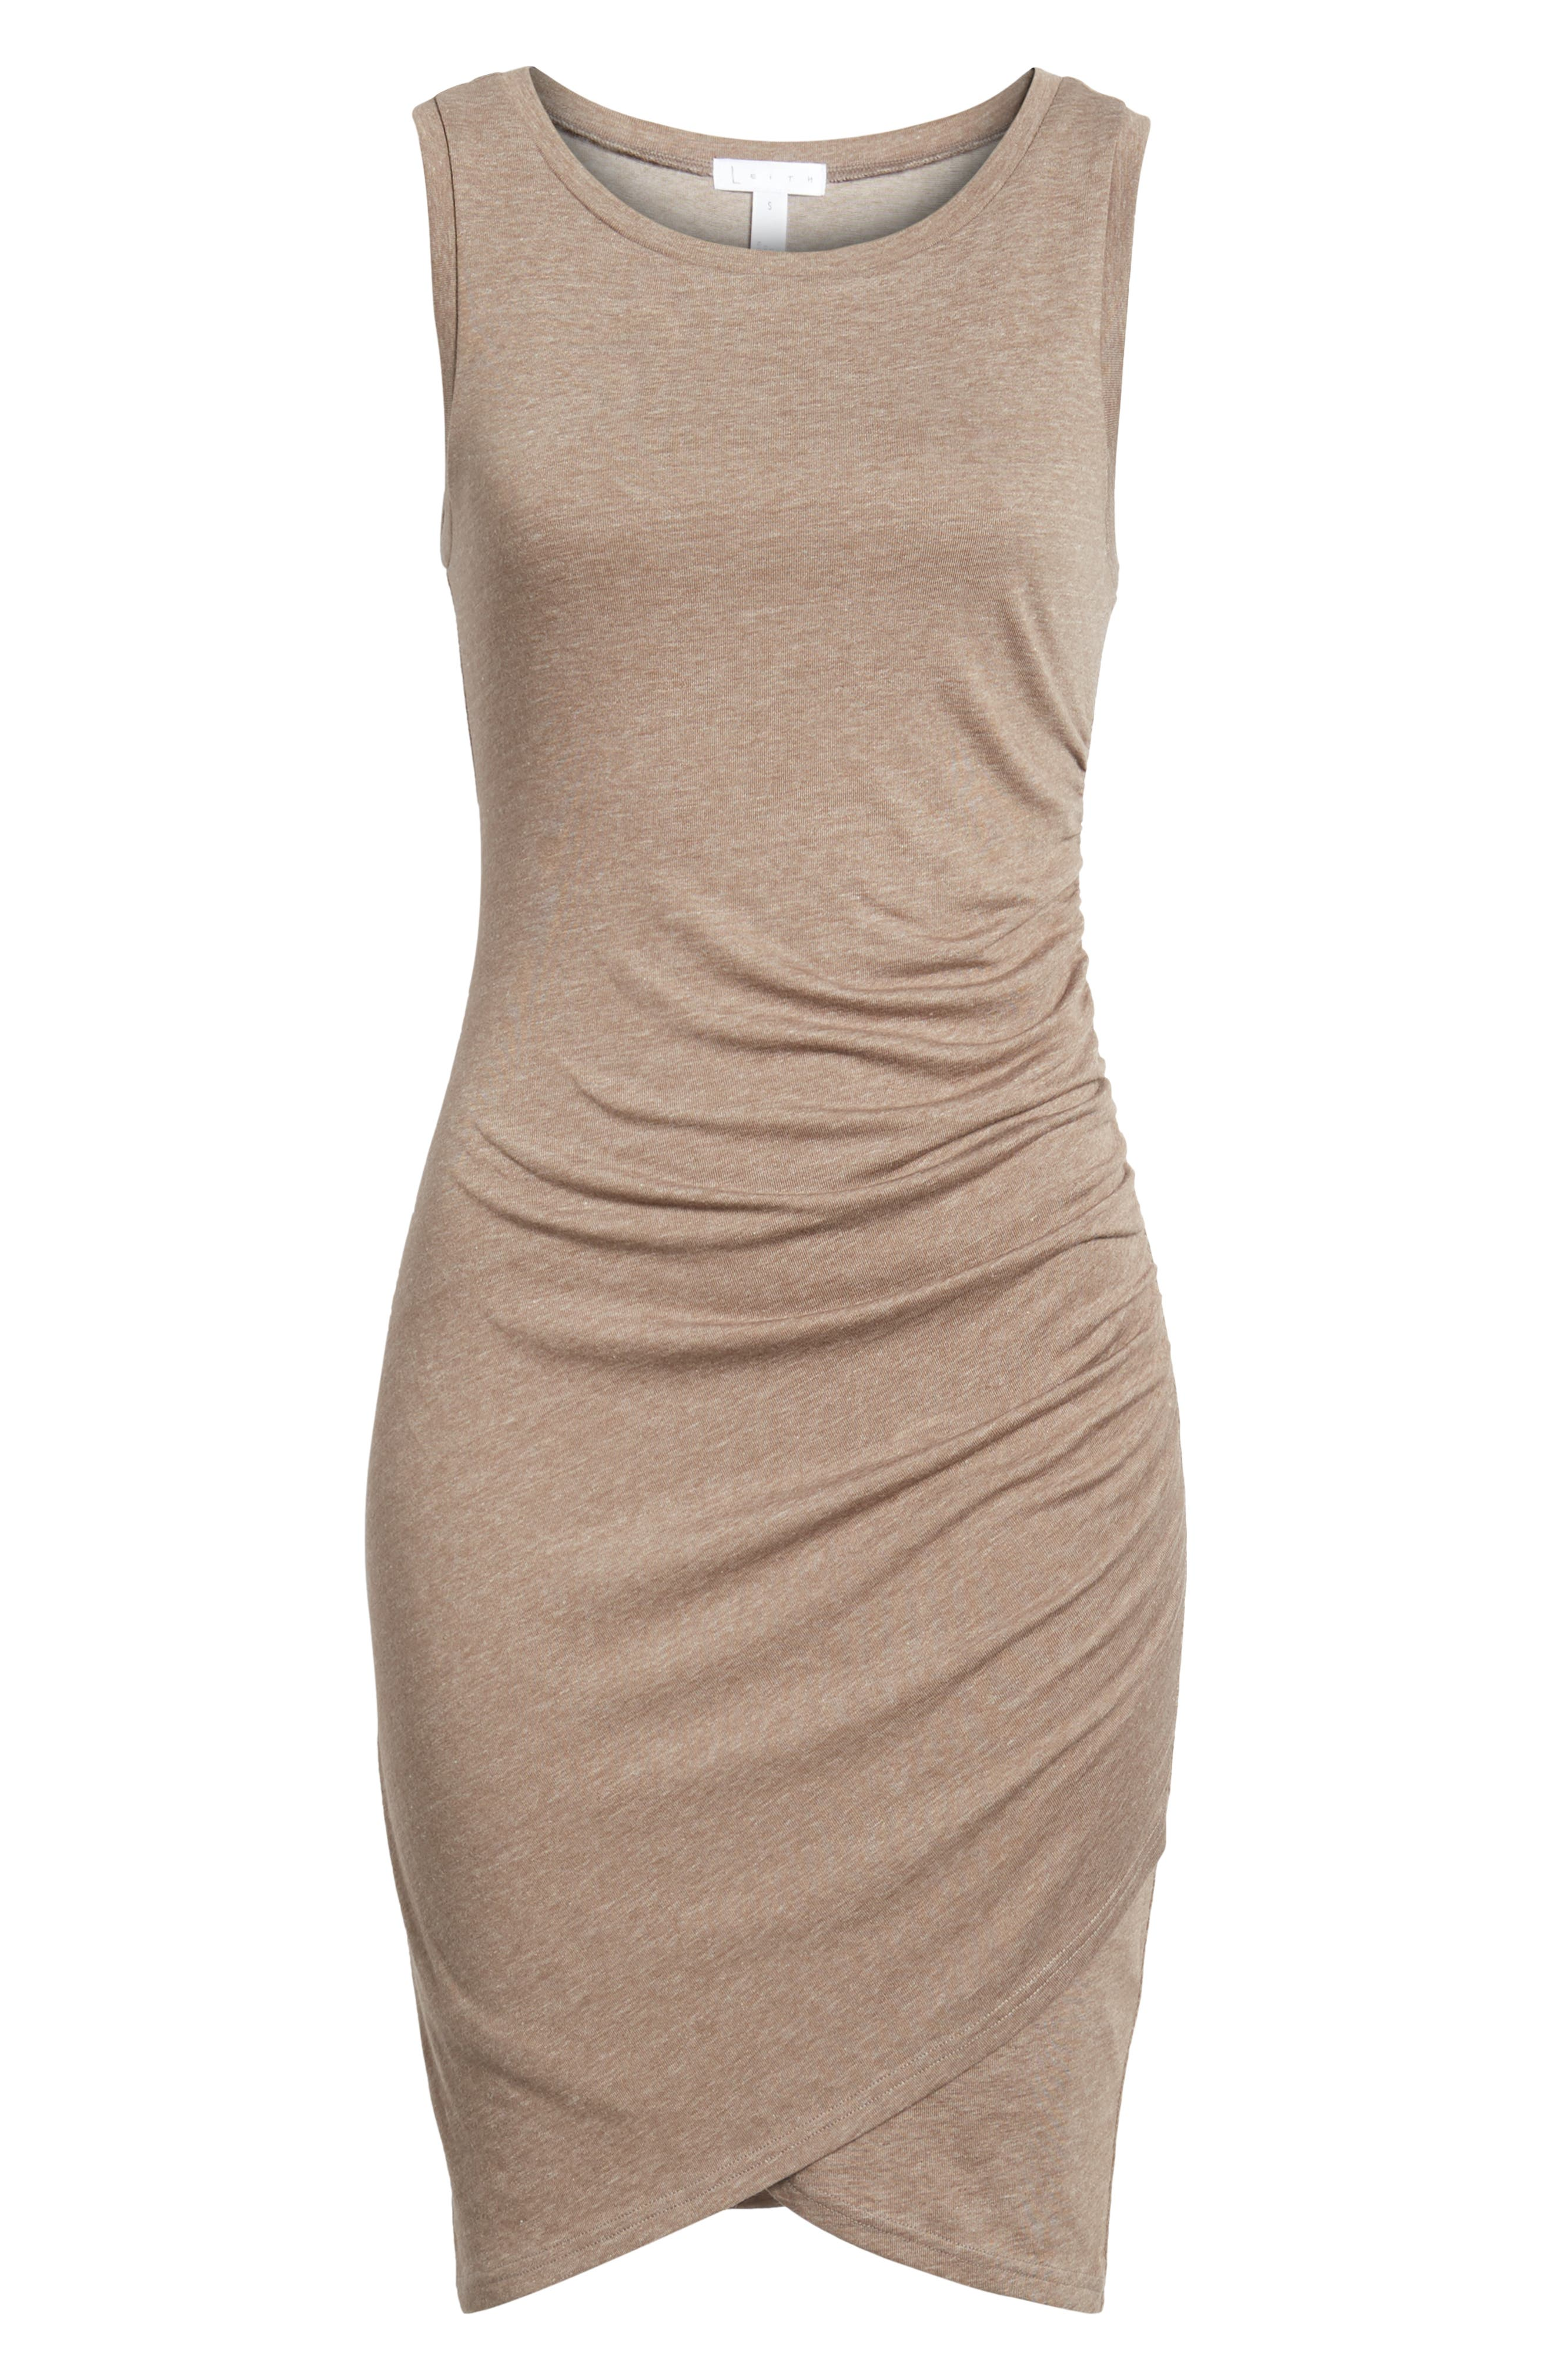 Ruched Body-Con Tank Dress,                             Alternate thumbnail 11, color,                             Tan Dusk Heather